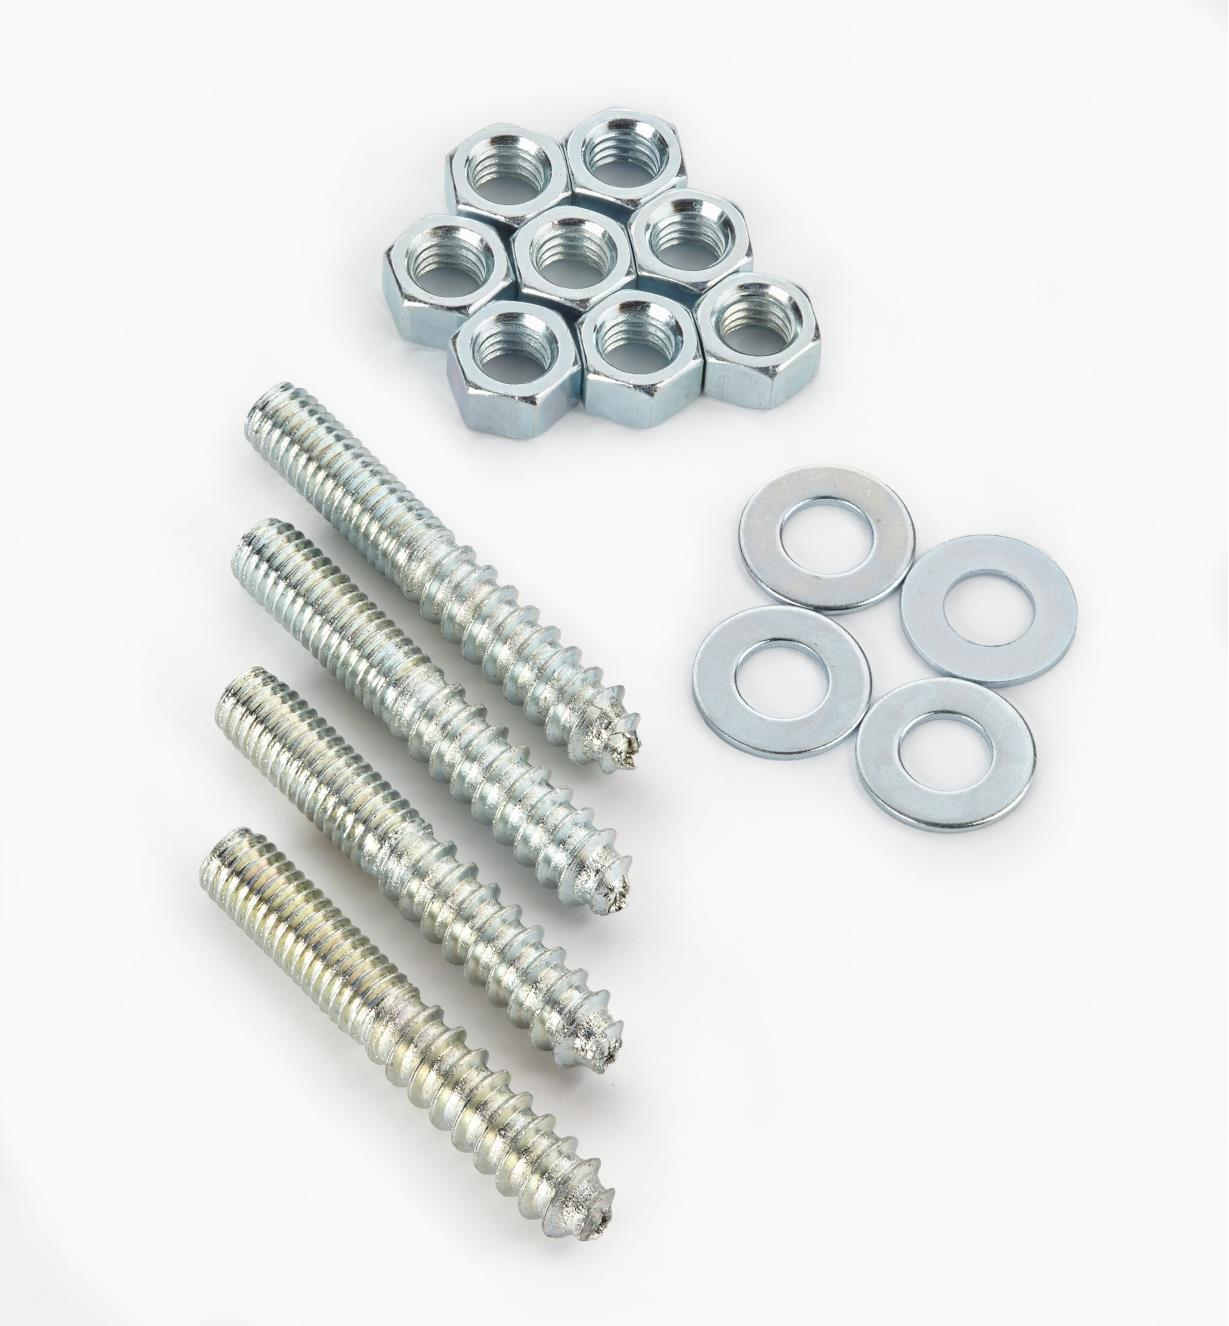 00H3306 - Hanger Bolts & Nuts, pkg. of 4